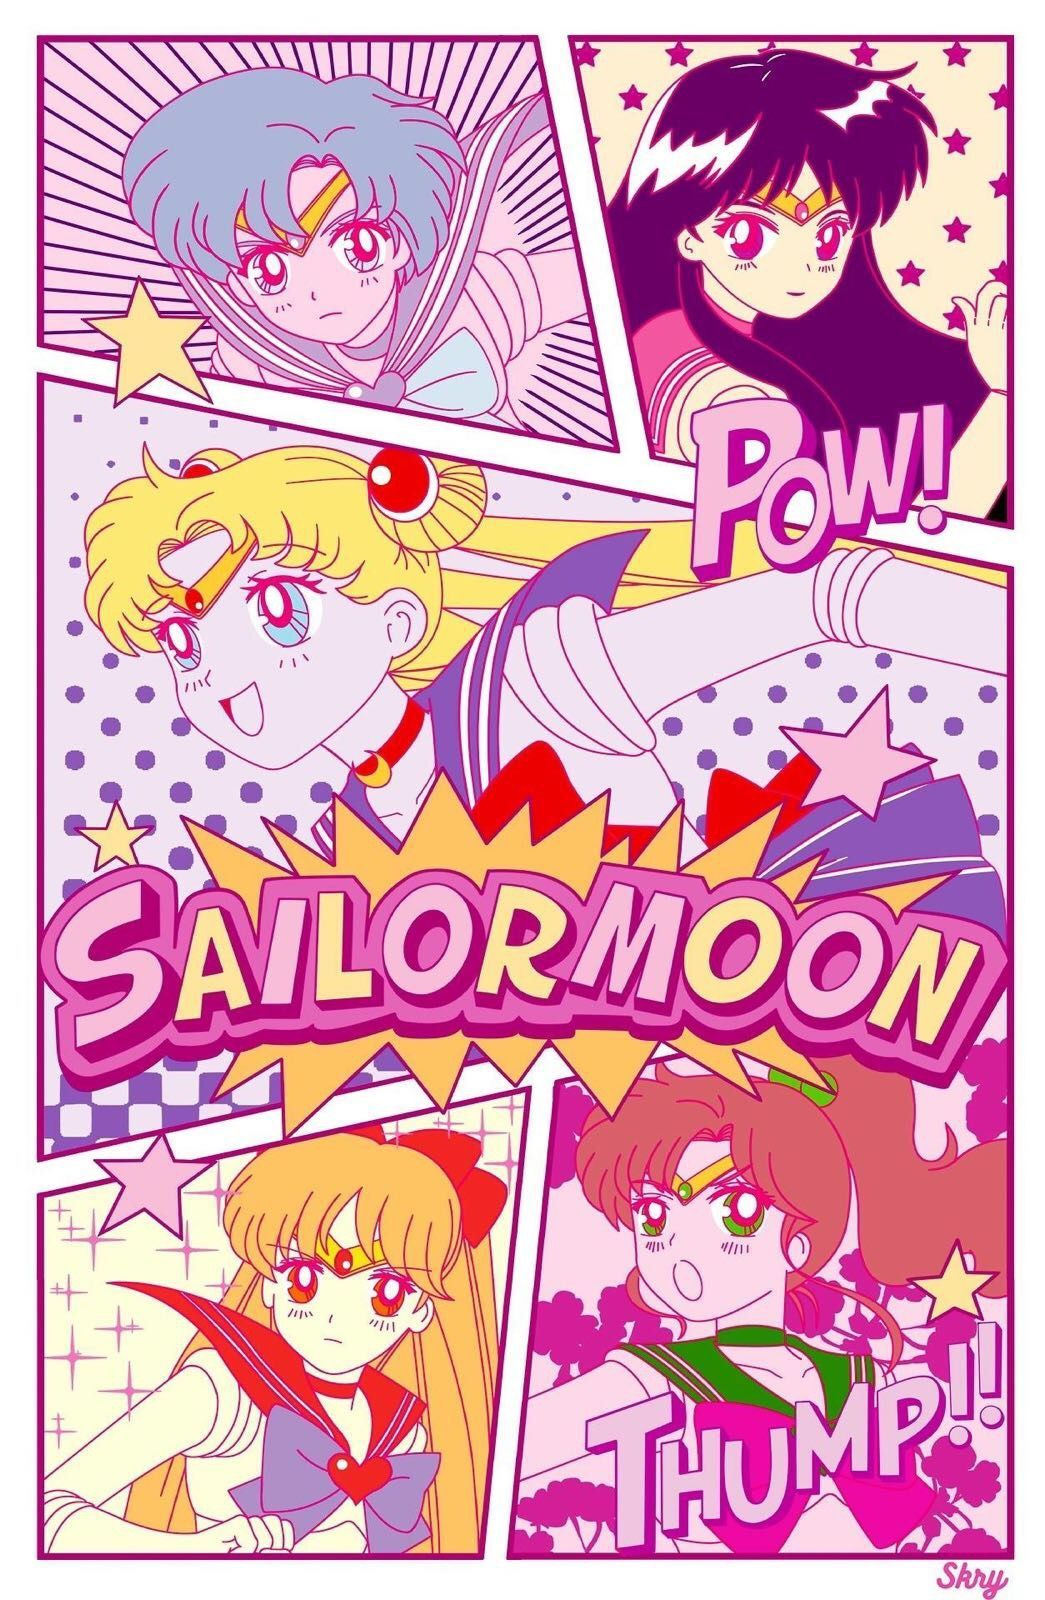 Aesthetic Sailor Moon Wallpapers Top Free Aesthetic Sailor Moon Backgrounds Wallpaperaccess